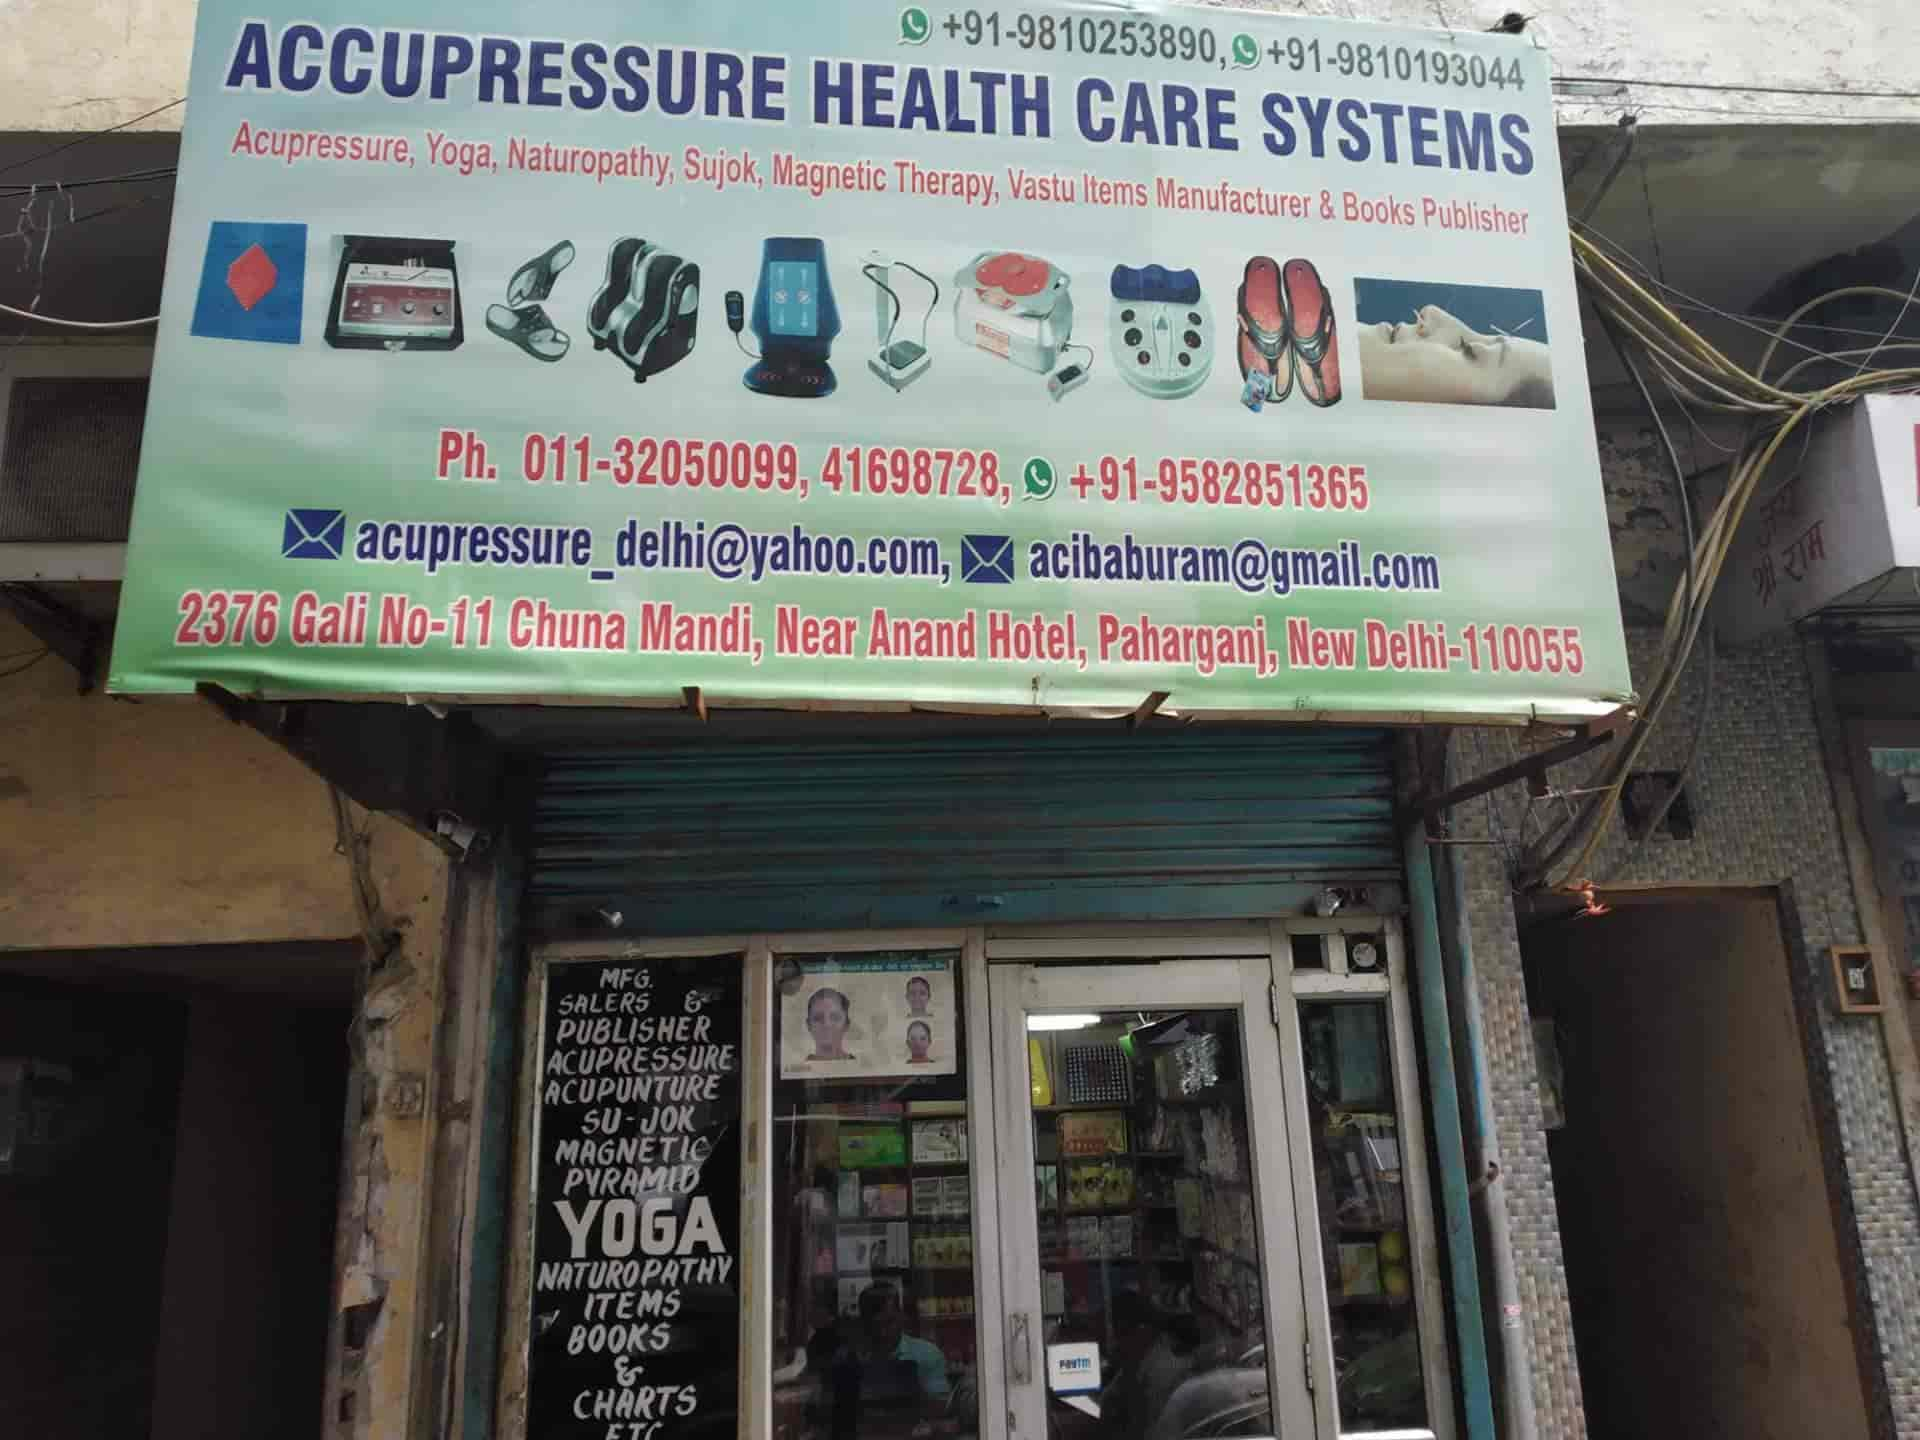 Accupressure Health Care System, Pahar Ganj - Surgical